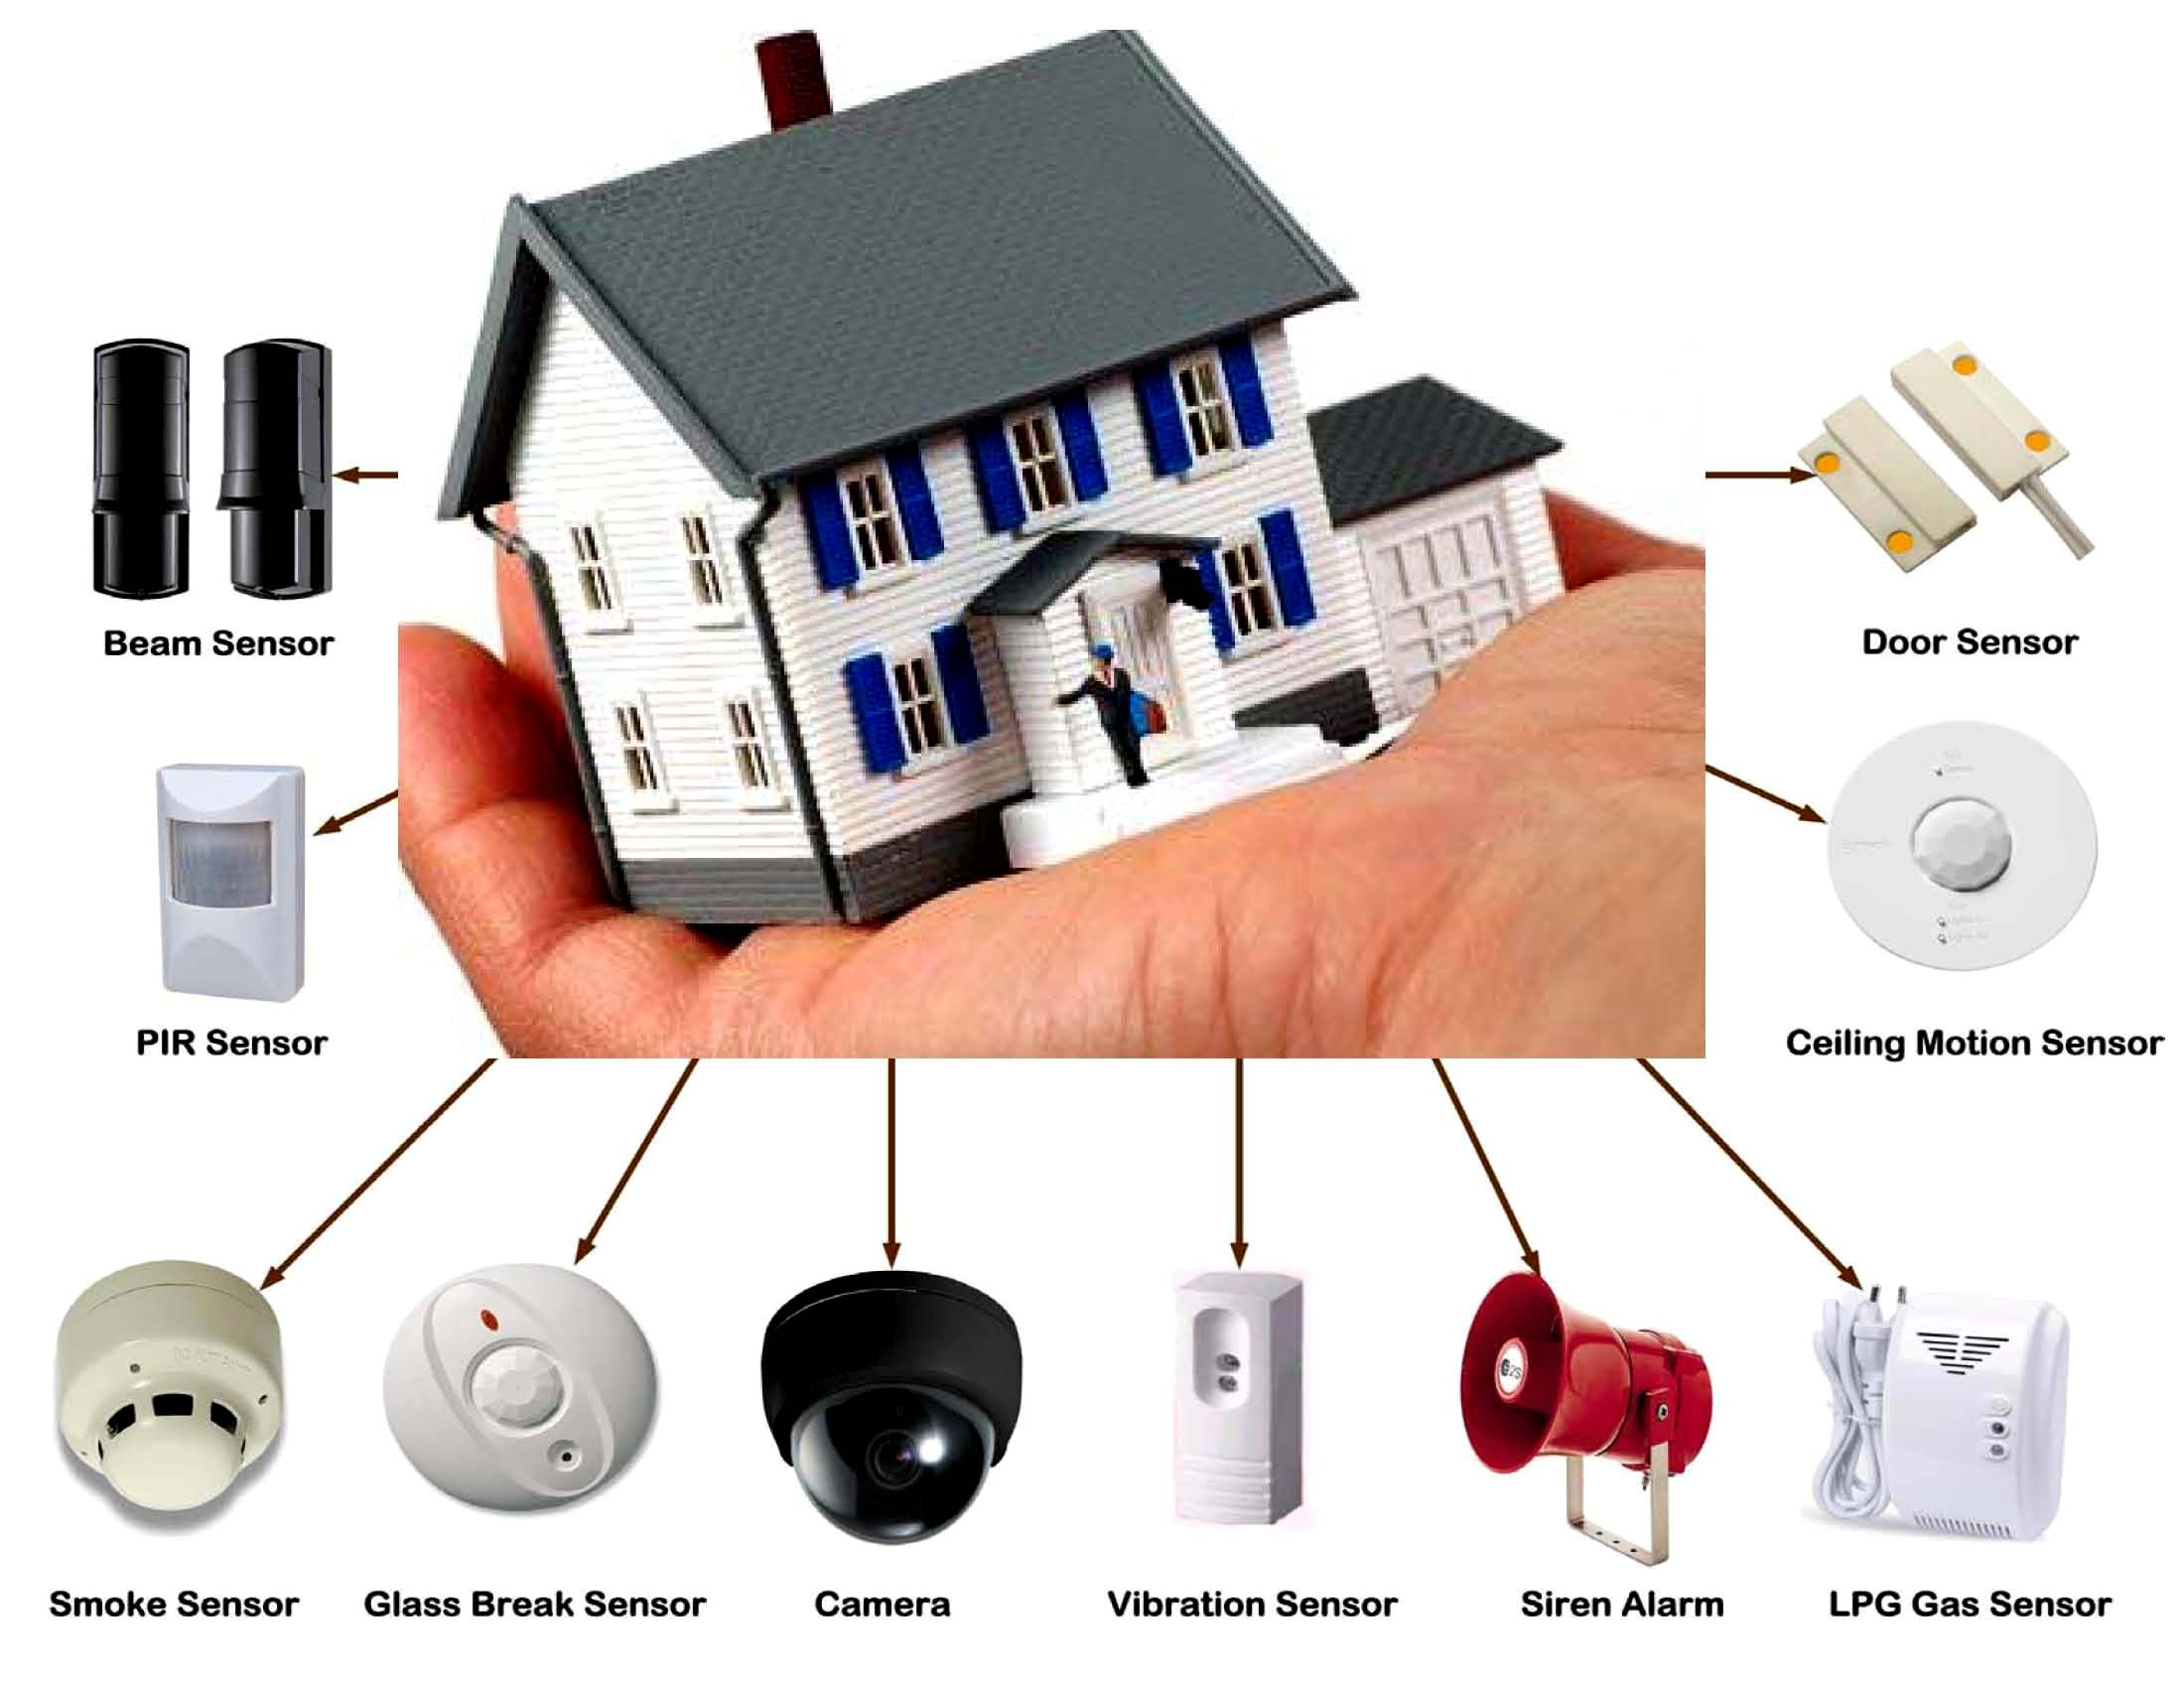 How To Choose A Security System For Your House?